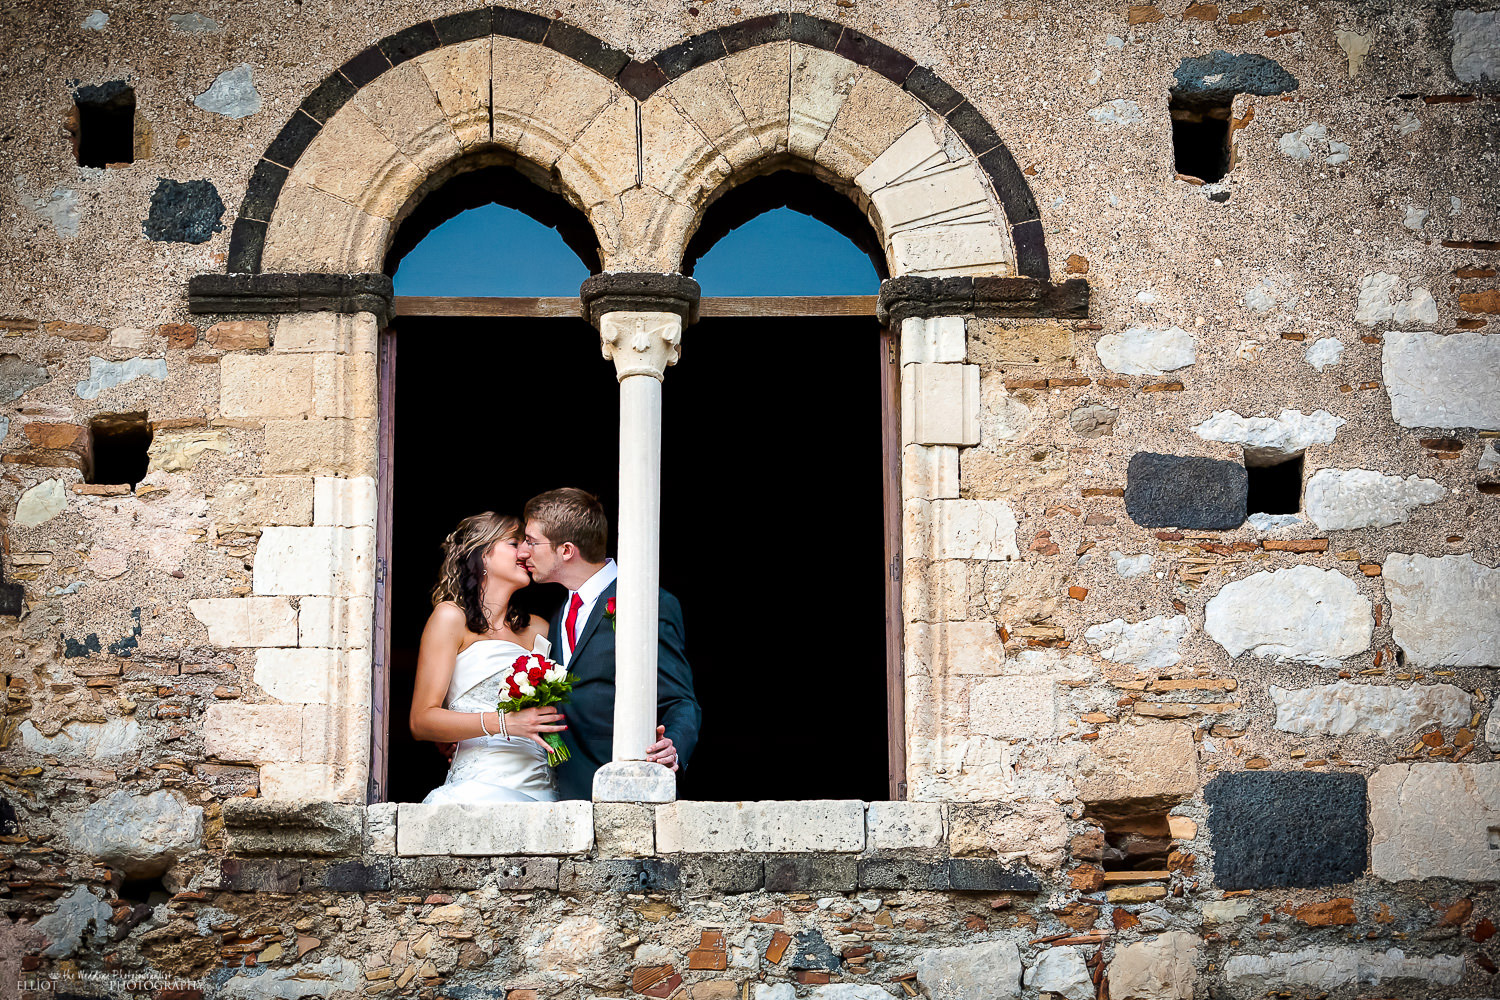 Bride and Groom kiss after wedding at Palace of the Dukes of Santo Stefano in Taormina.